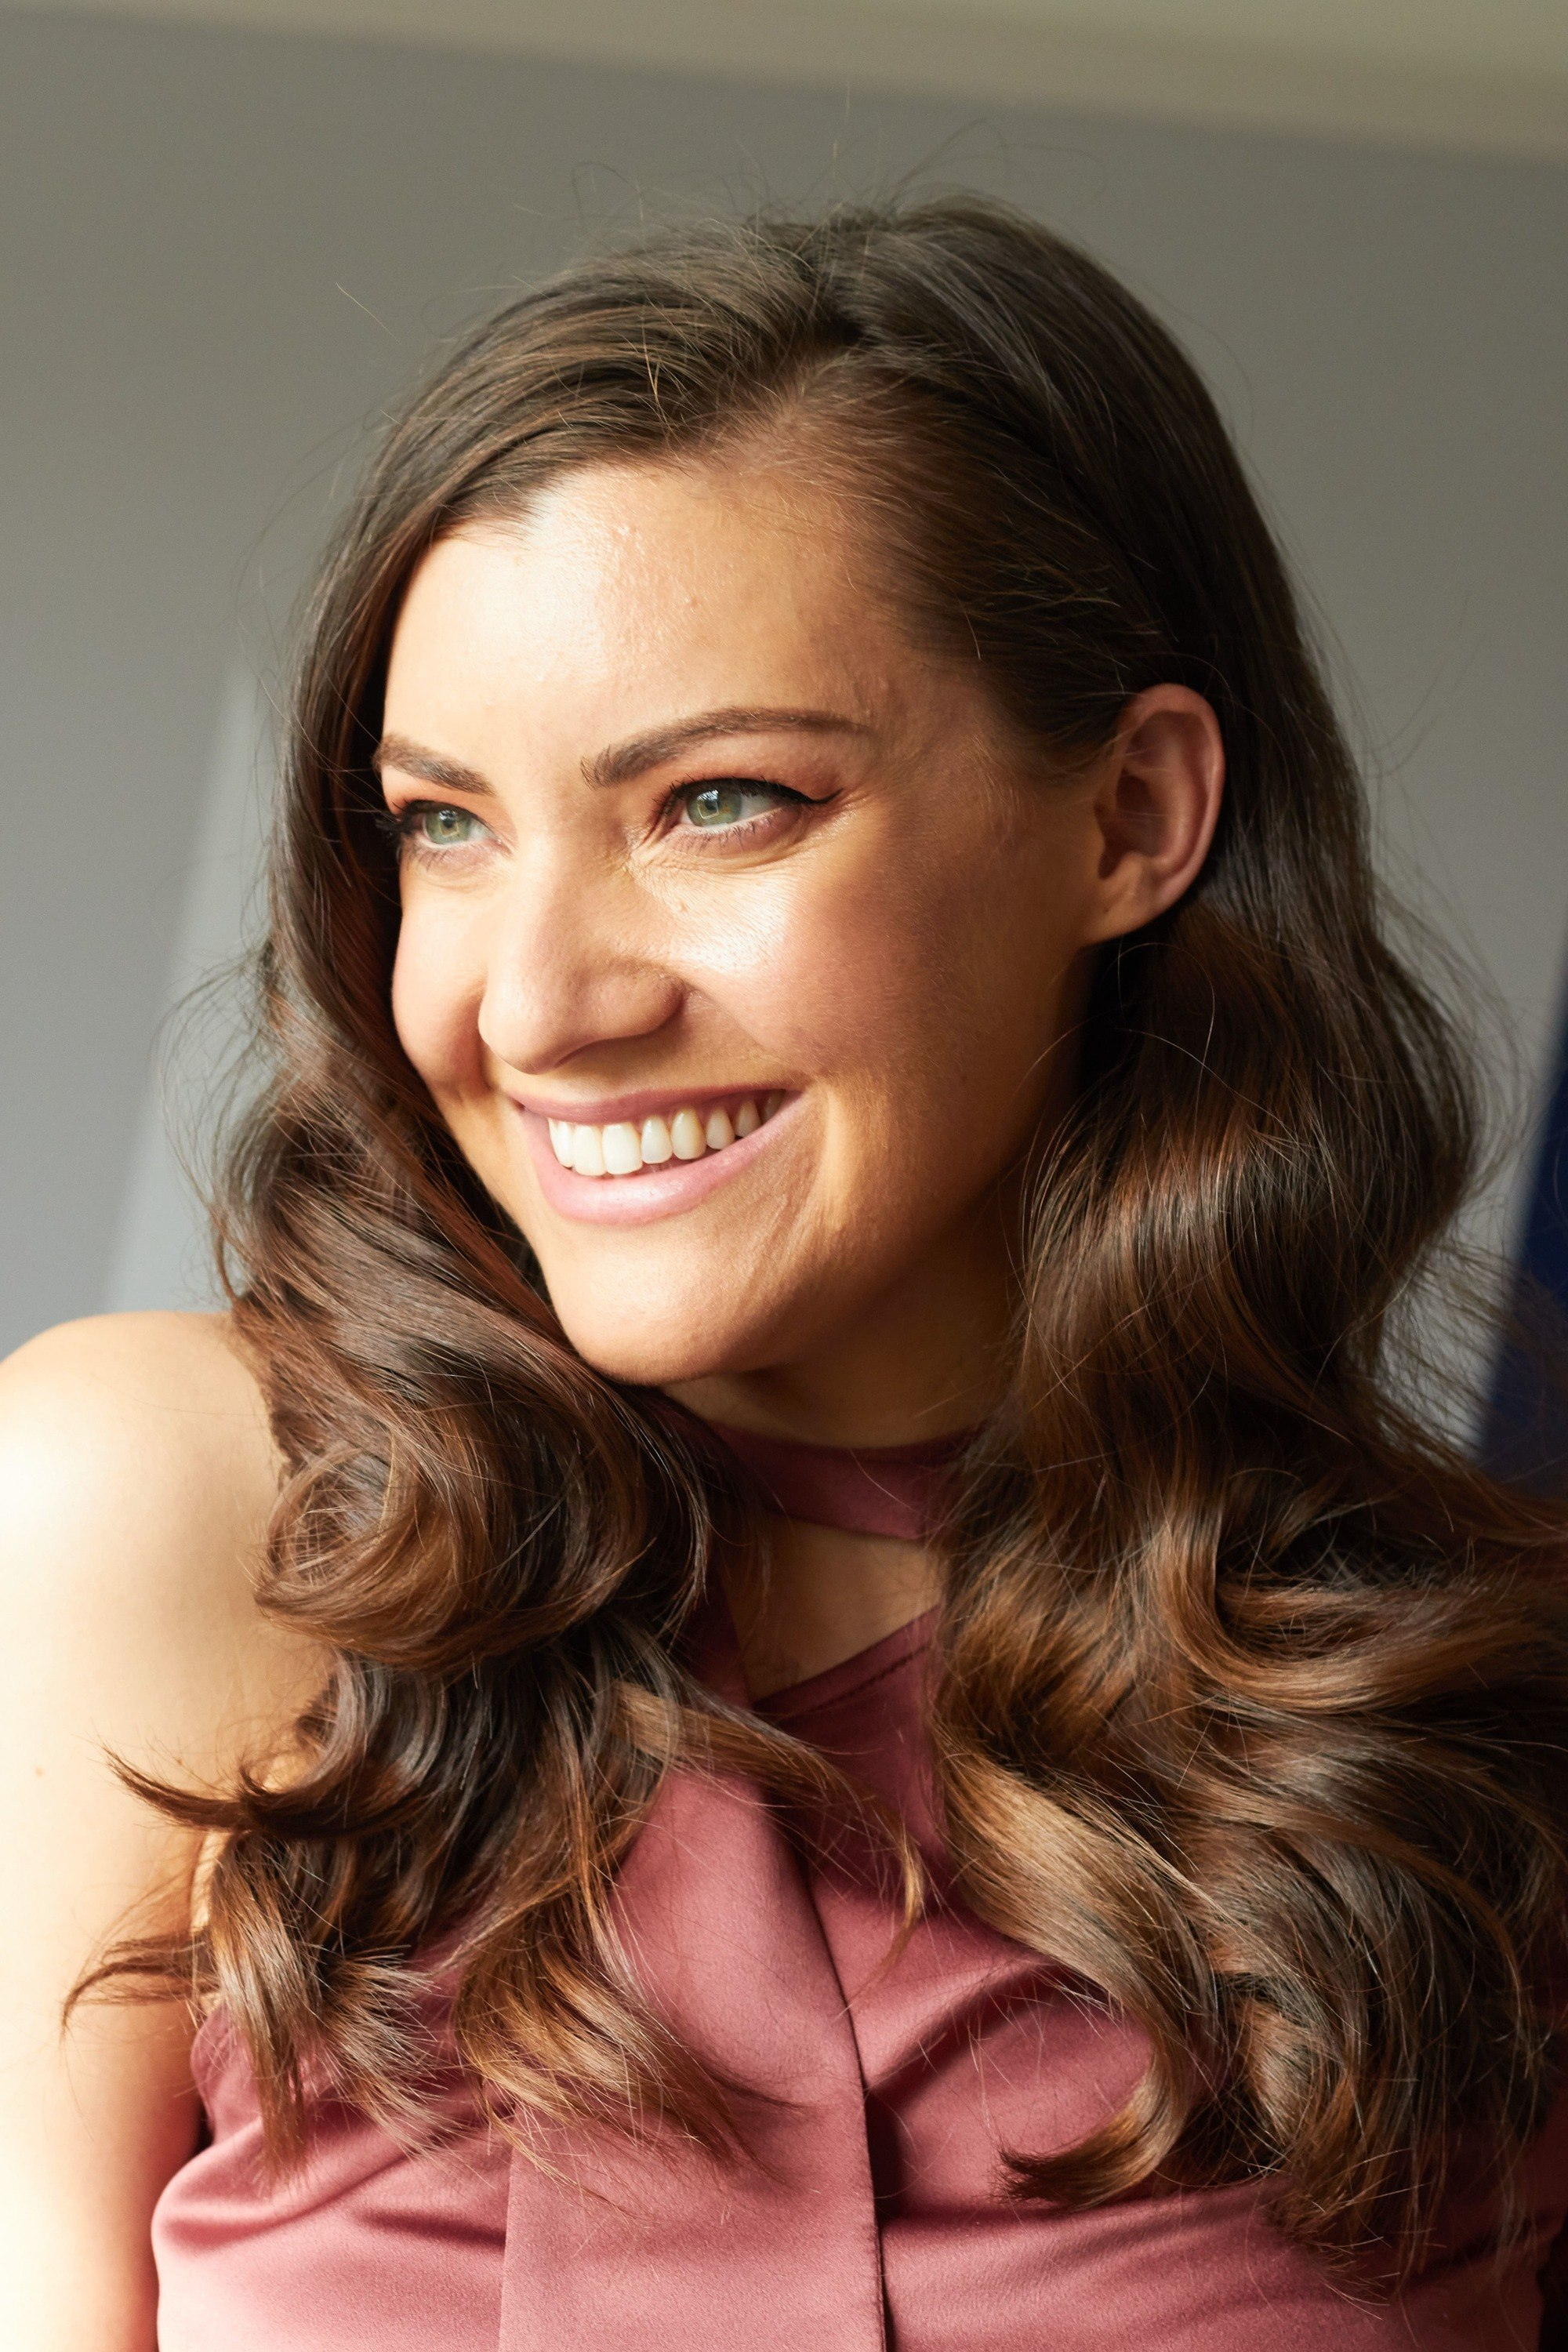 Bridesmaid hairstyles: Woman with dark brown hair styled into retro curls smiling